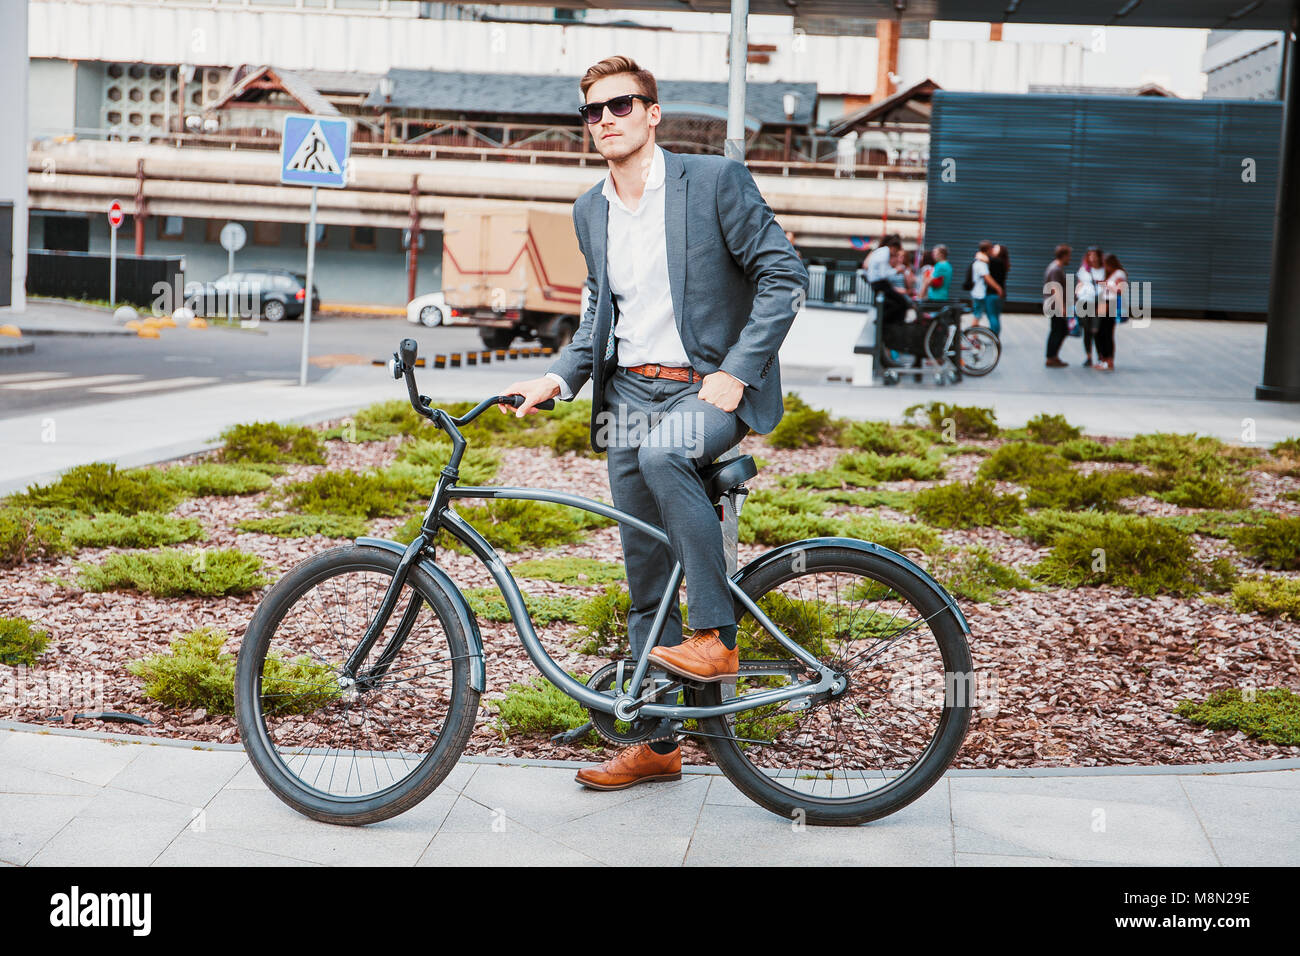 Businessman riding bicycle to work on urban street in morning - Stock Image